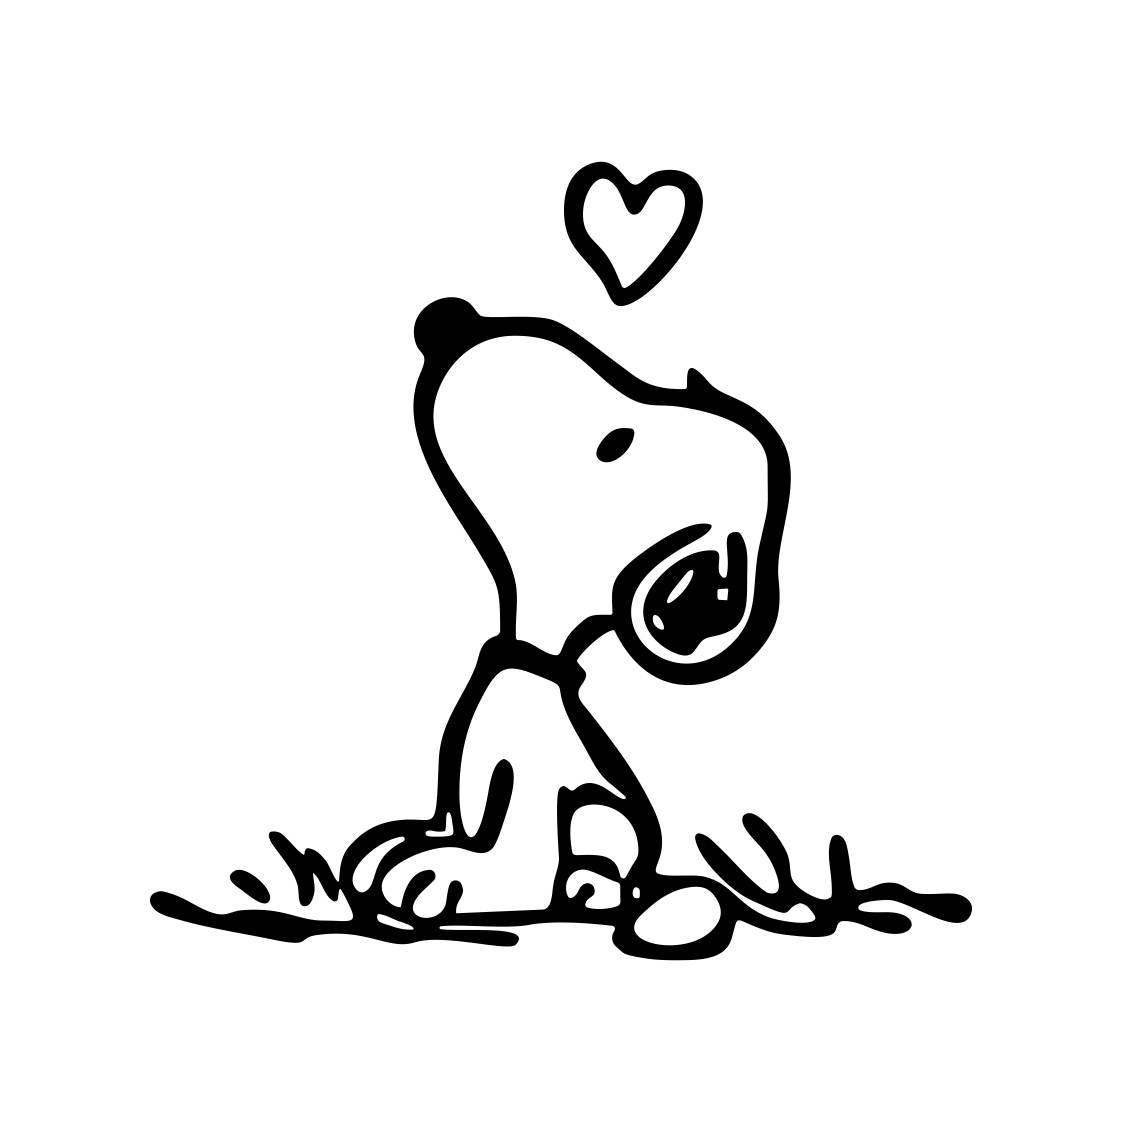 1122x1122 Snoopy Love Graphics Svg Dxf Eps Png Cdr Ai Pdf Vector Art Etsy